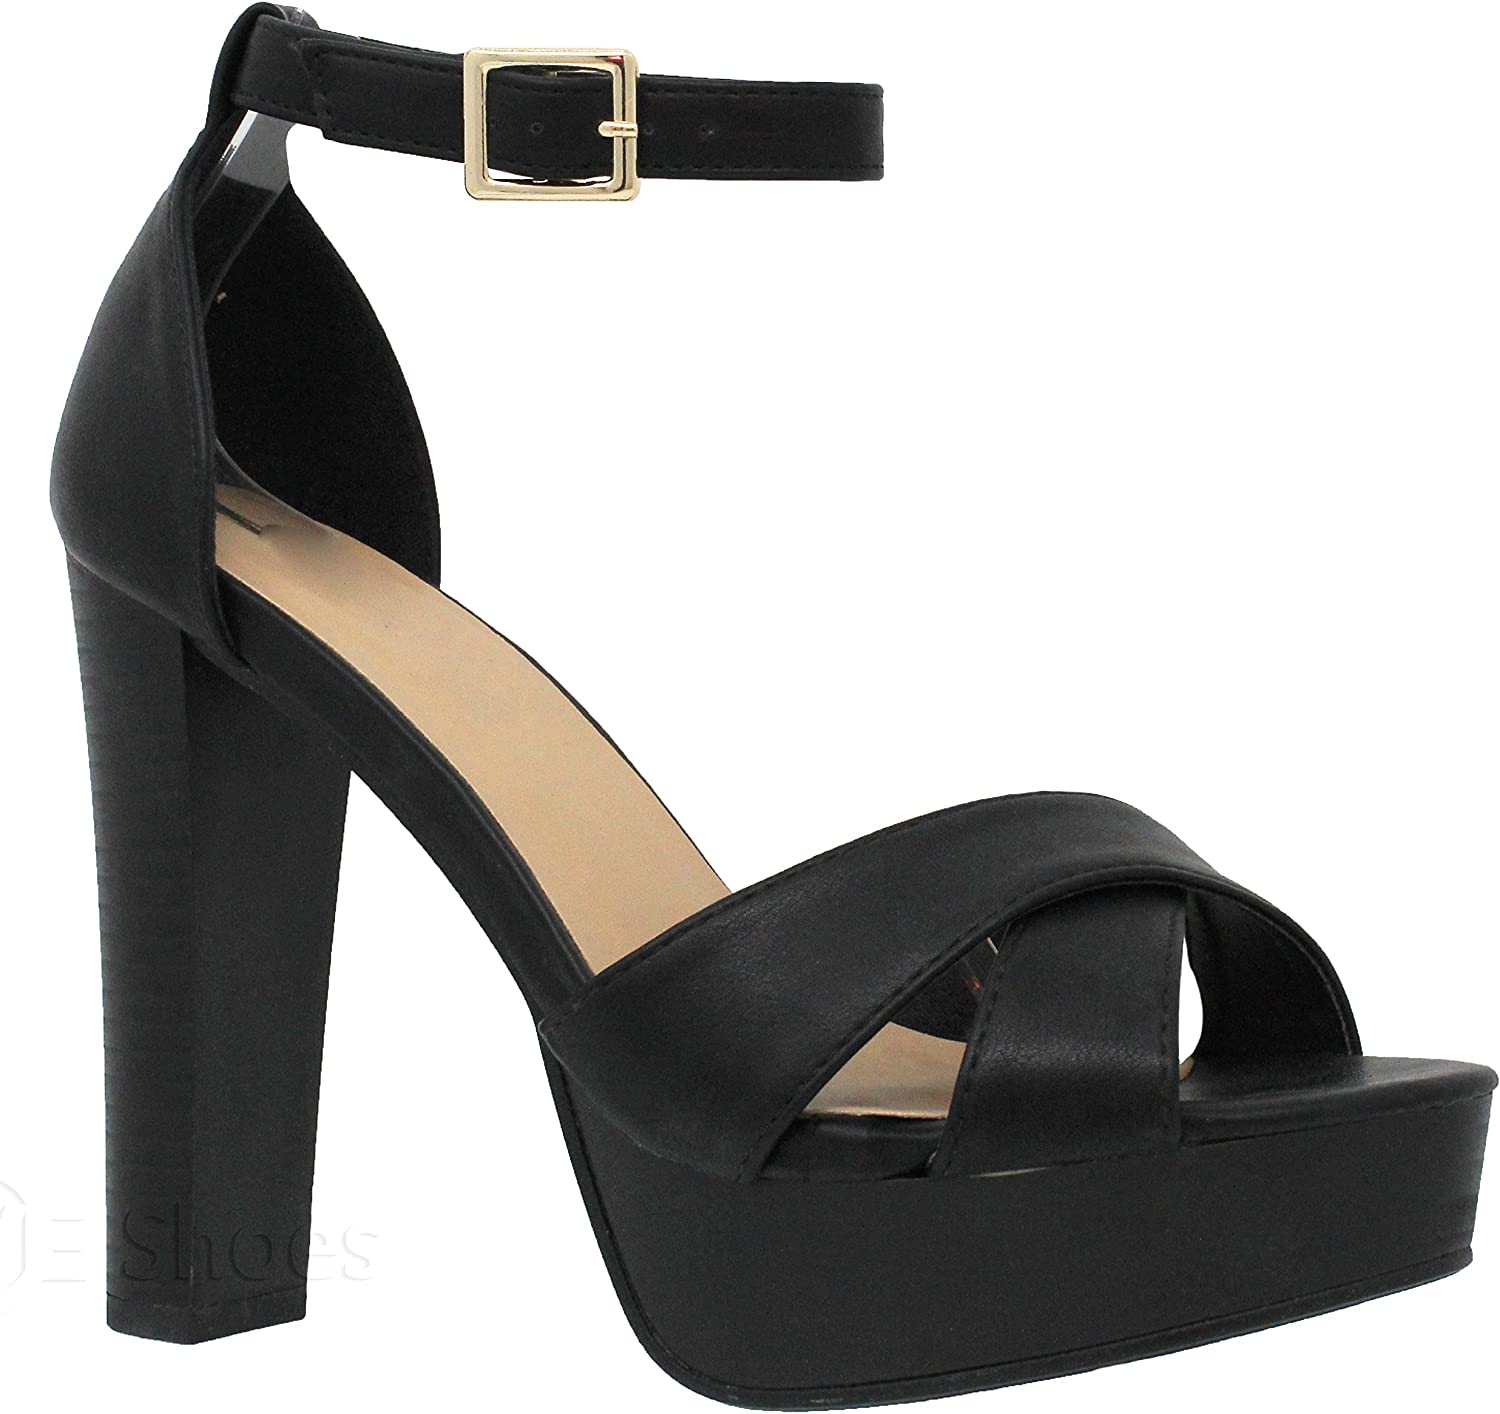 MVE shoes Women's Platform Ankle Strap High Heel-Formal Party Block Dress Heel-Open Toe Heeled Sandal